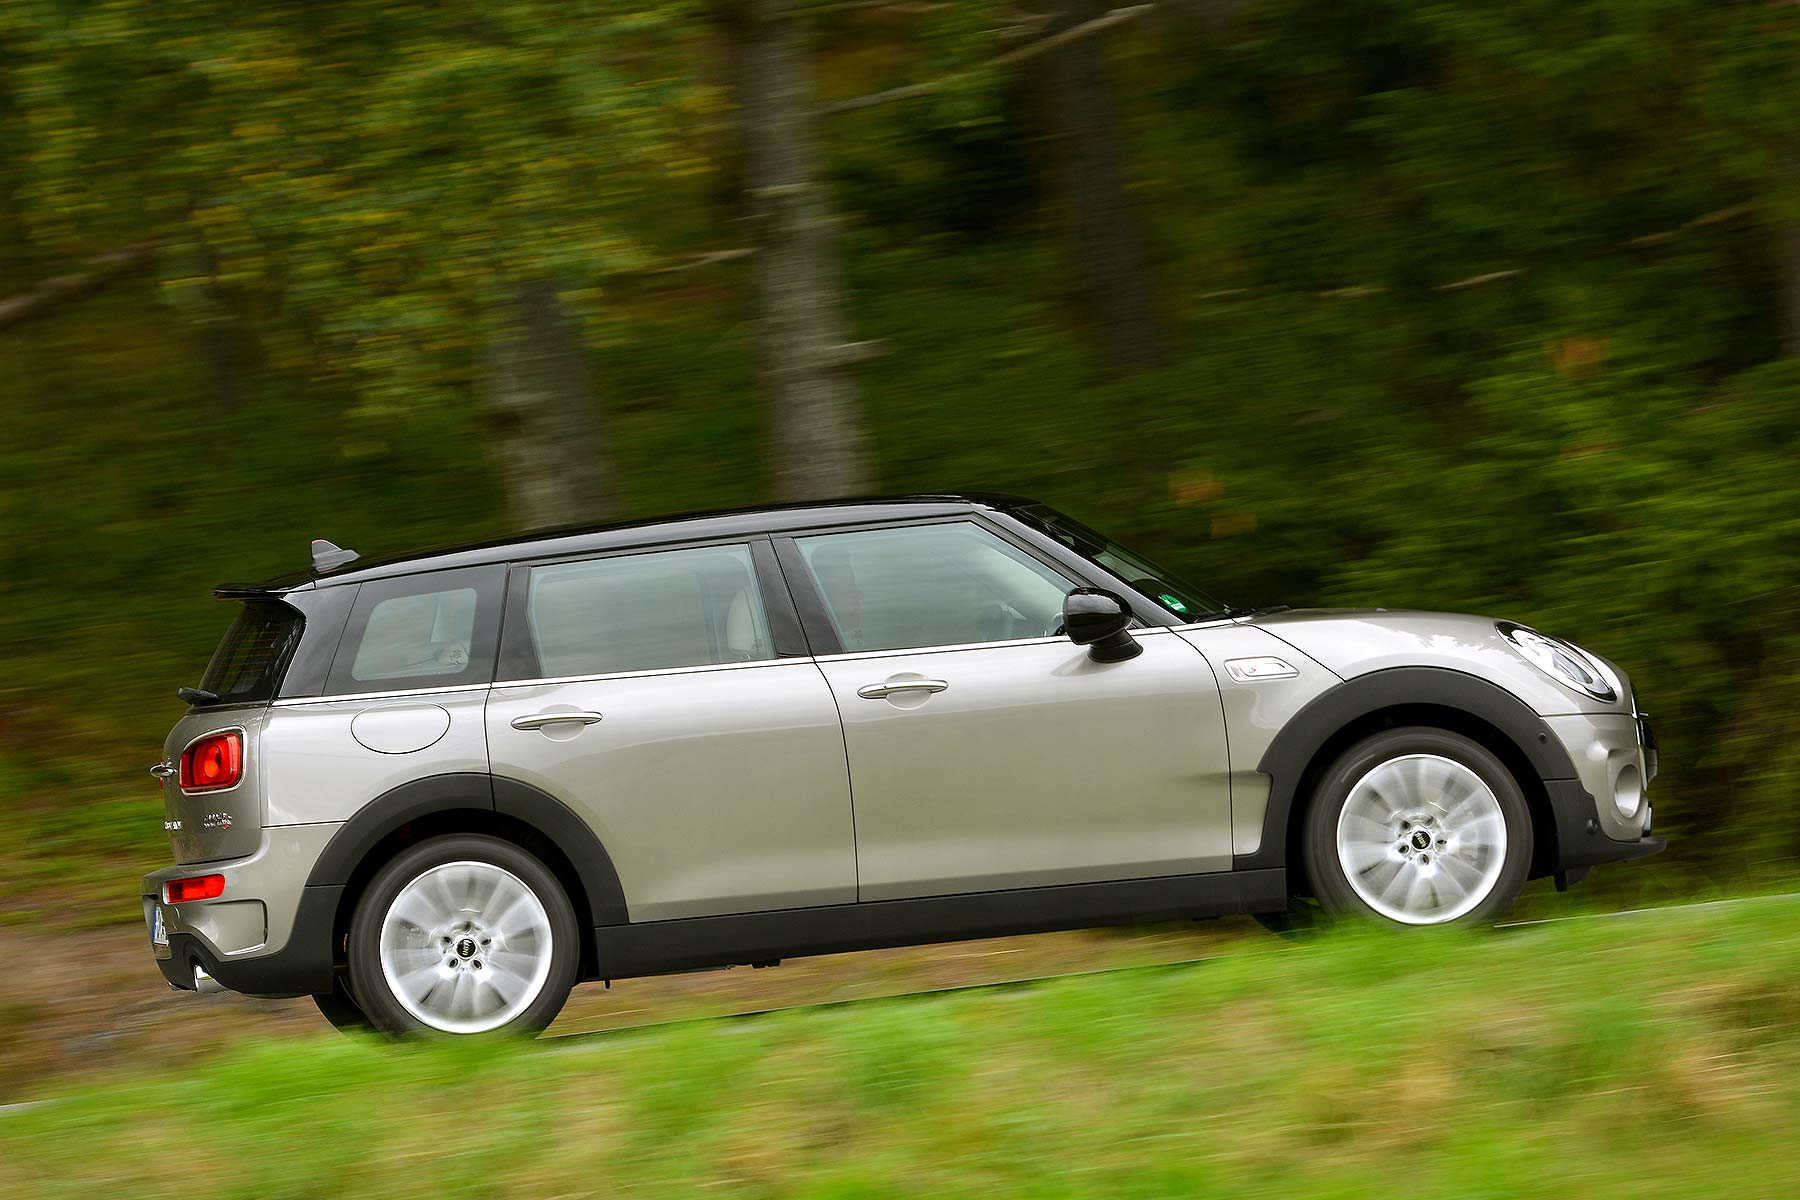 mini clubman review 2015 first drive motoring research. Black Bedroom Furniture Sets. Home Design Ideas